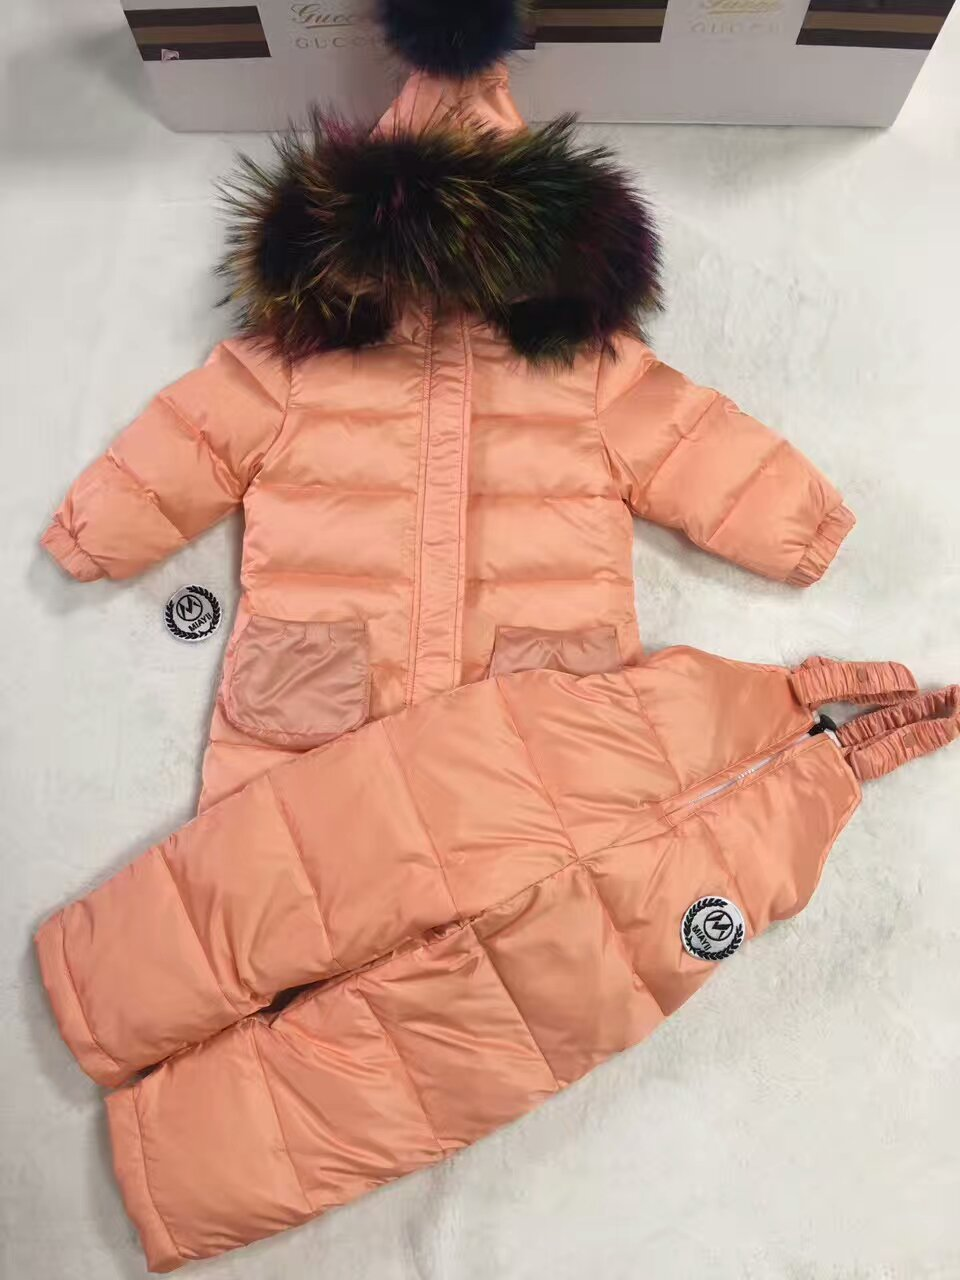 2016 Winter Jacket Children down coat child down jackets& PANT duck down Fur hooded snowsuit coats children Suit set outerwear 2016 winter jacket women down coat fur hooded vest down coats vest pant underwear women s suit thicken set outerwear trousers